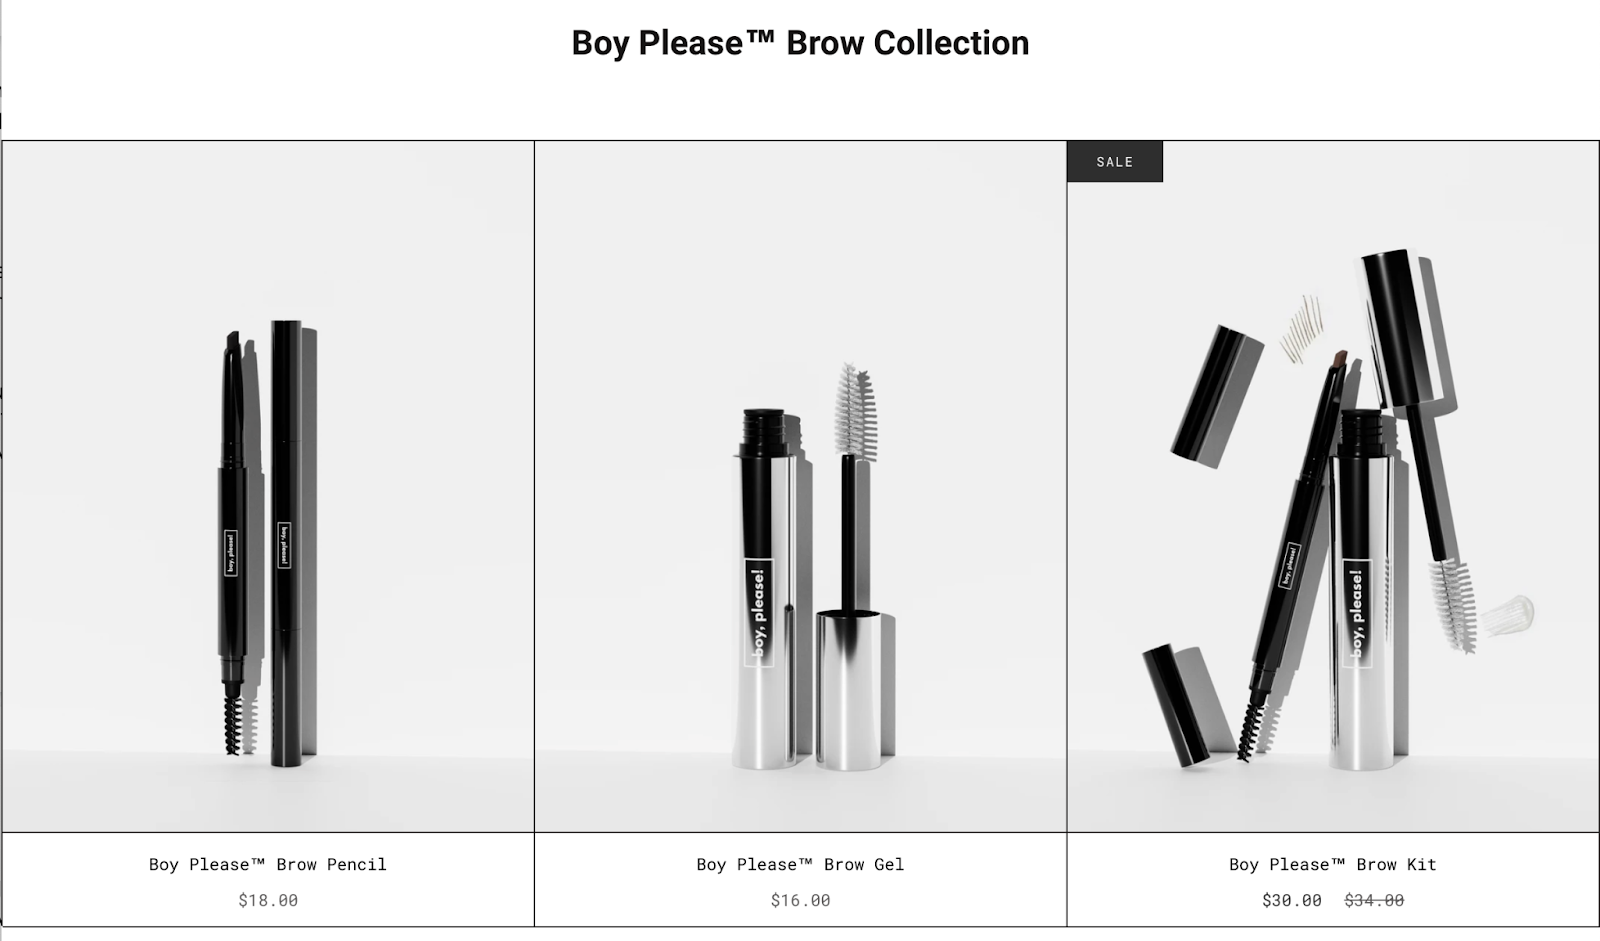 Boy, please! released their brow line for men.